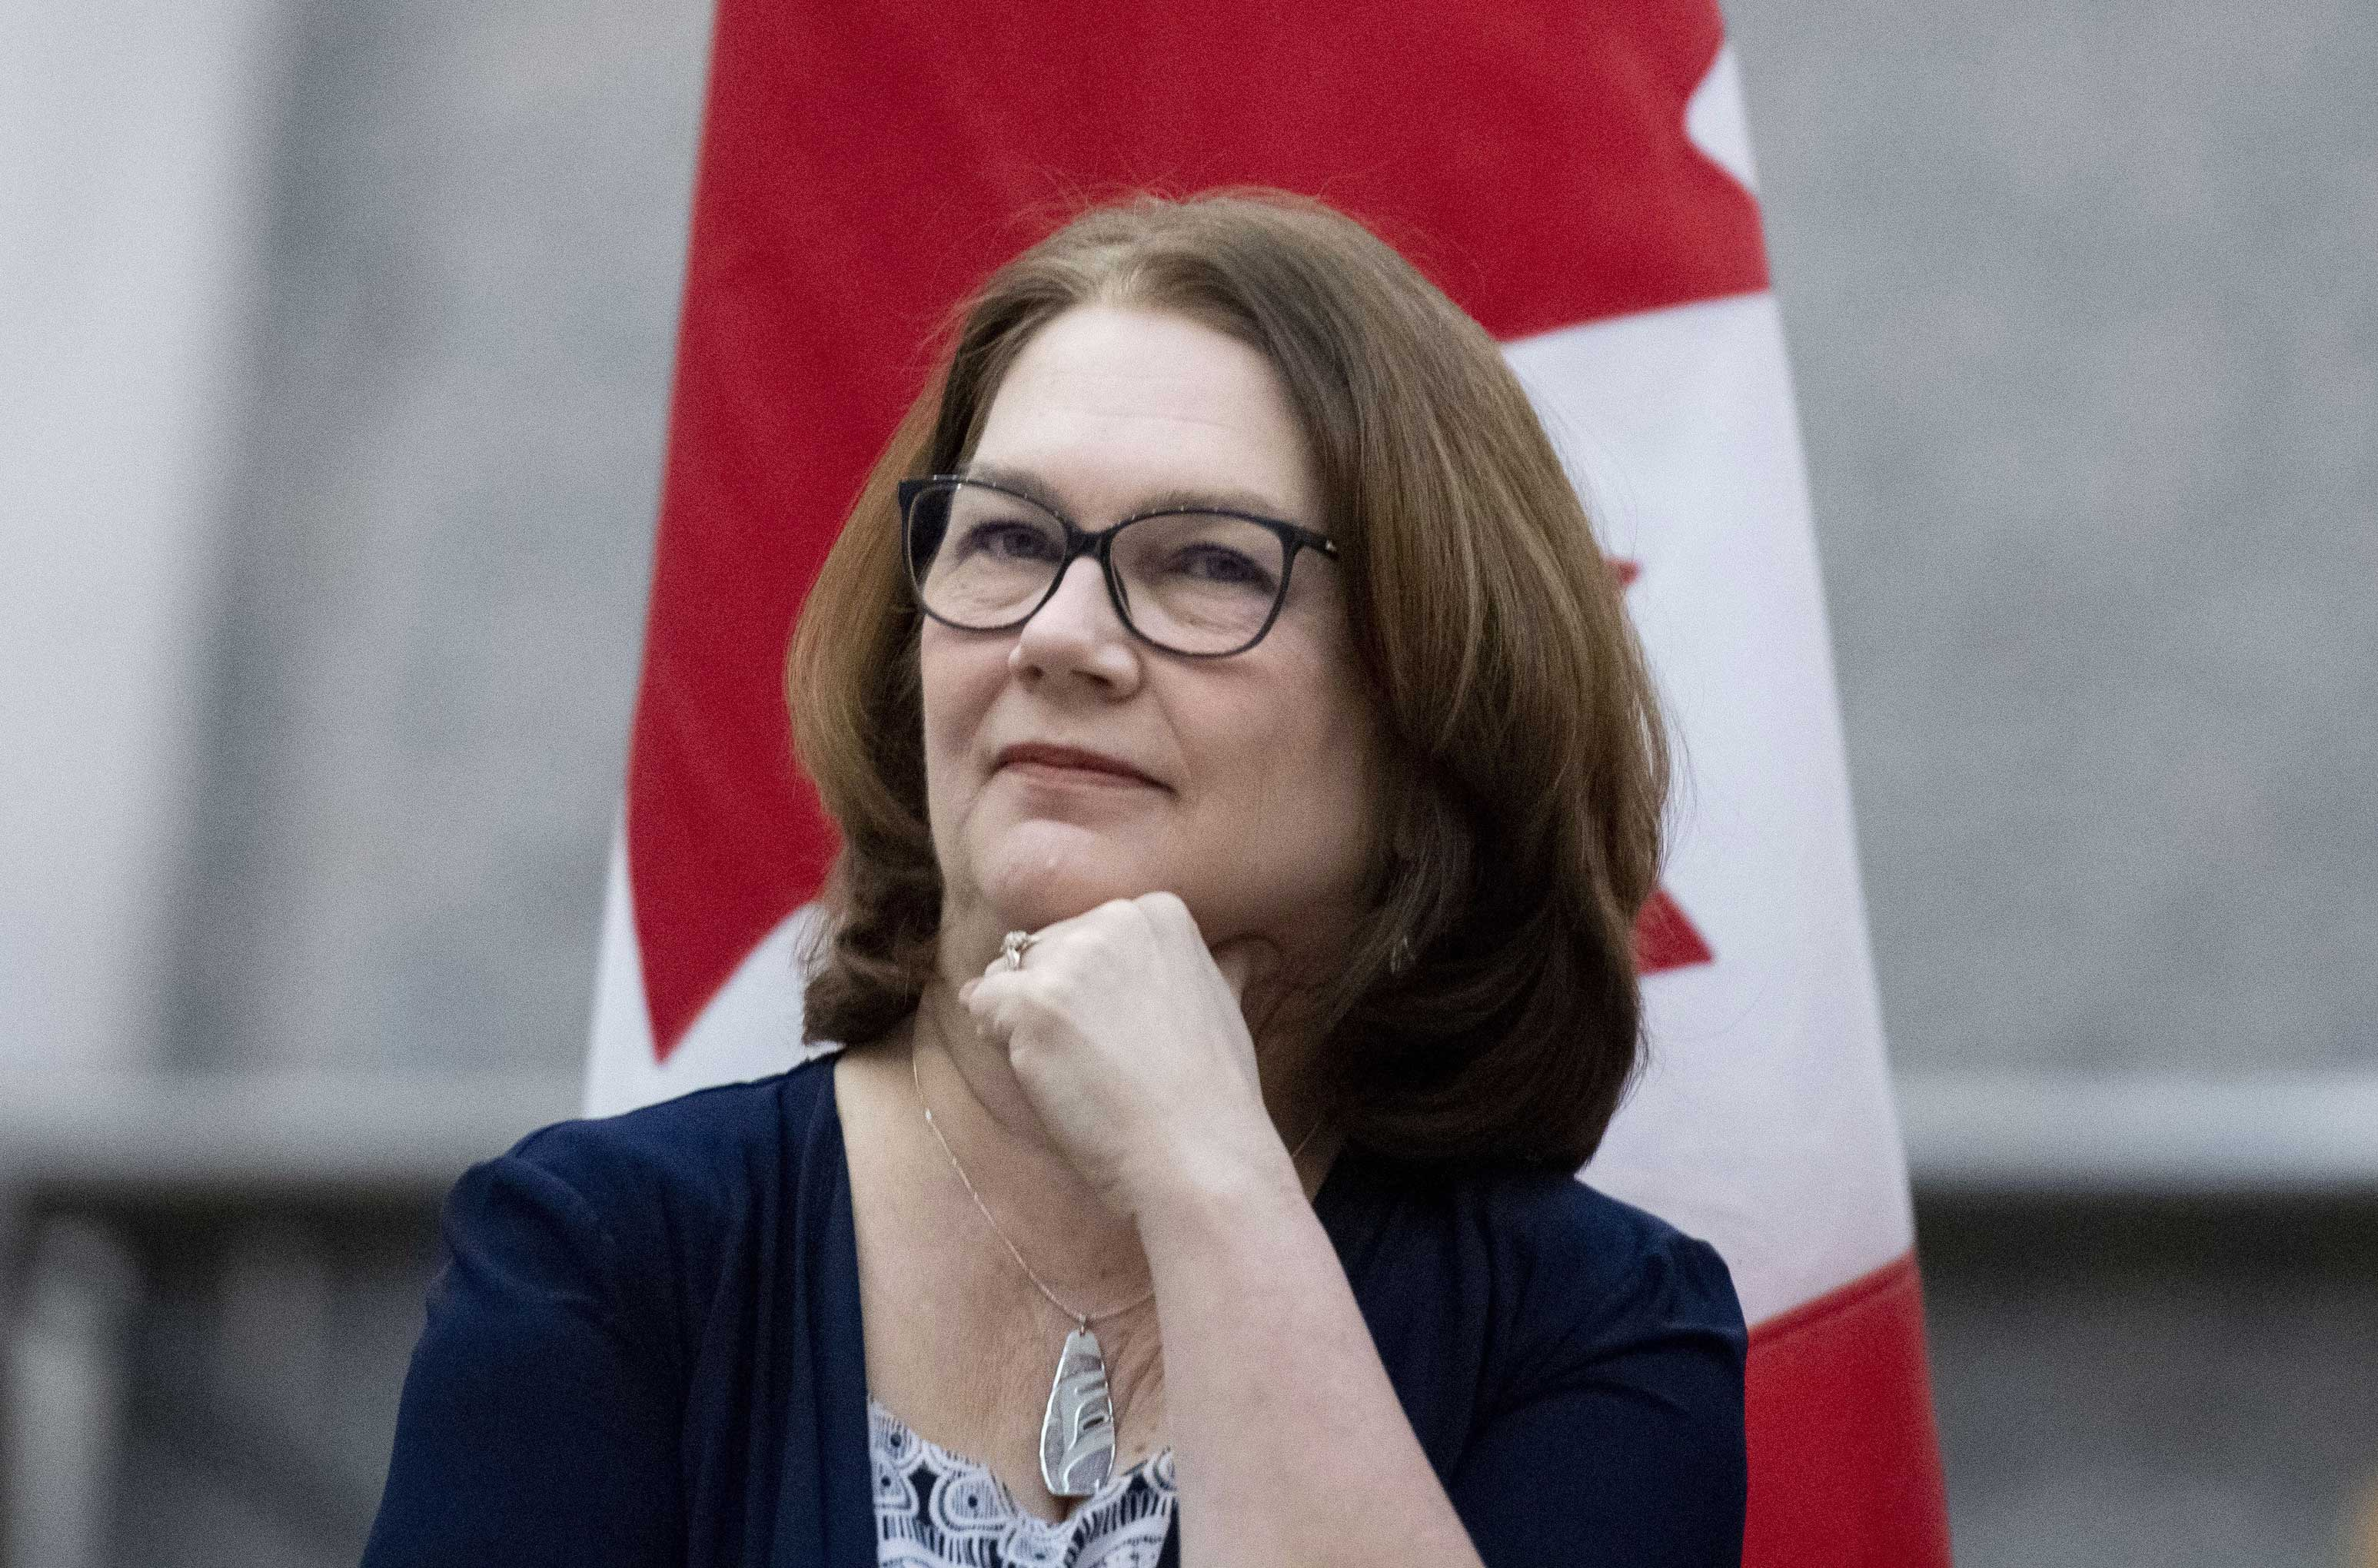 Jane Philpott with a Canadian flag draped behind her.